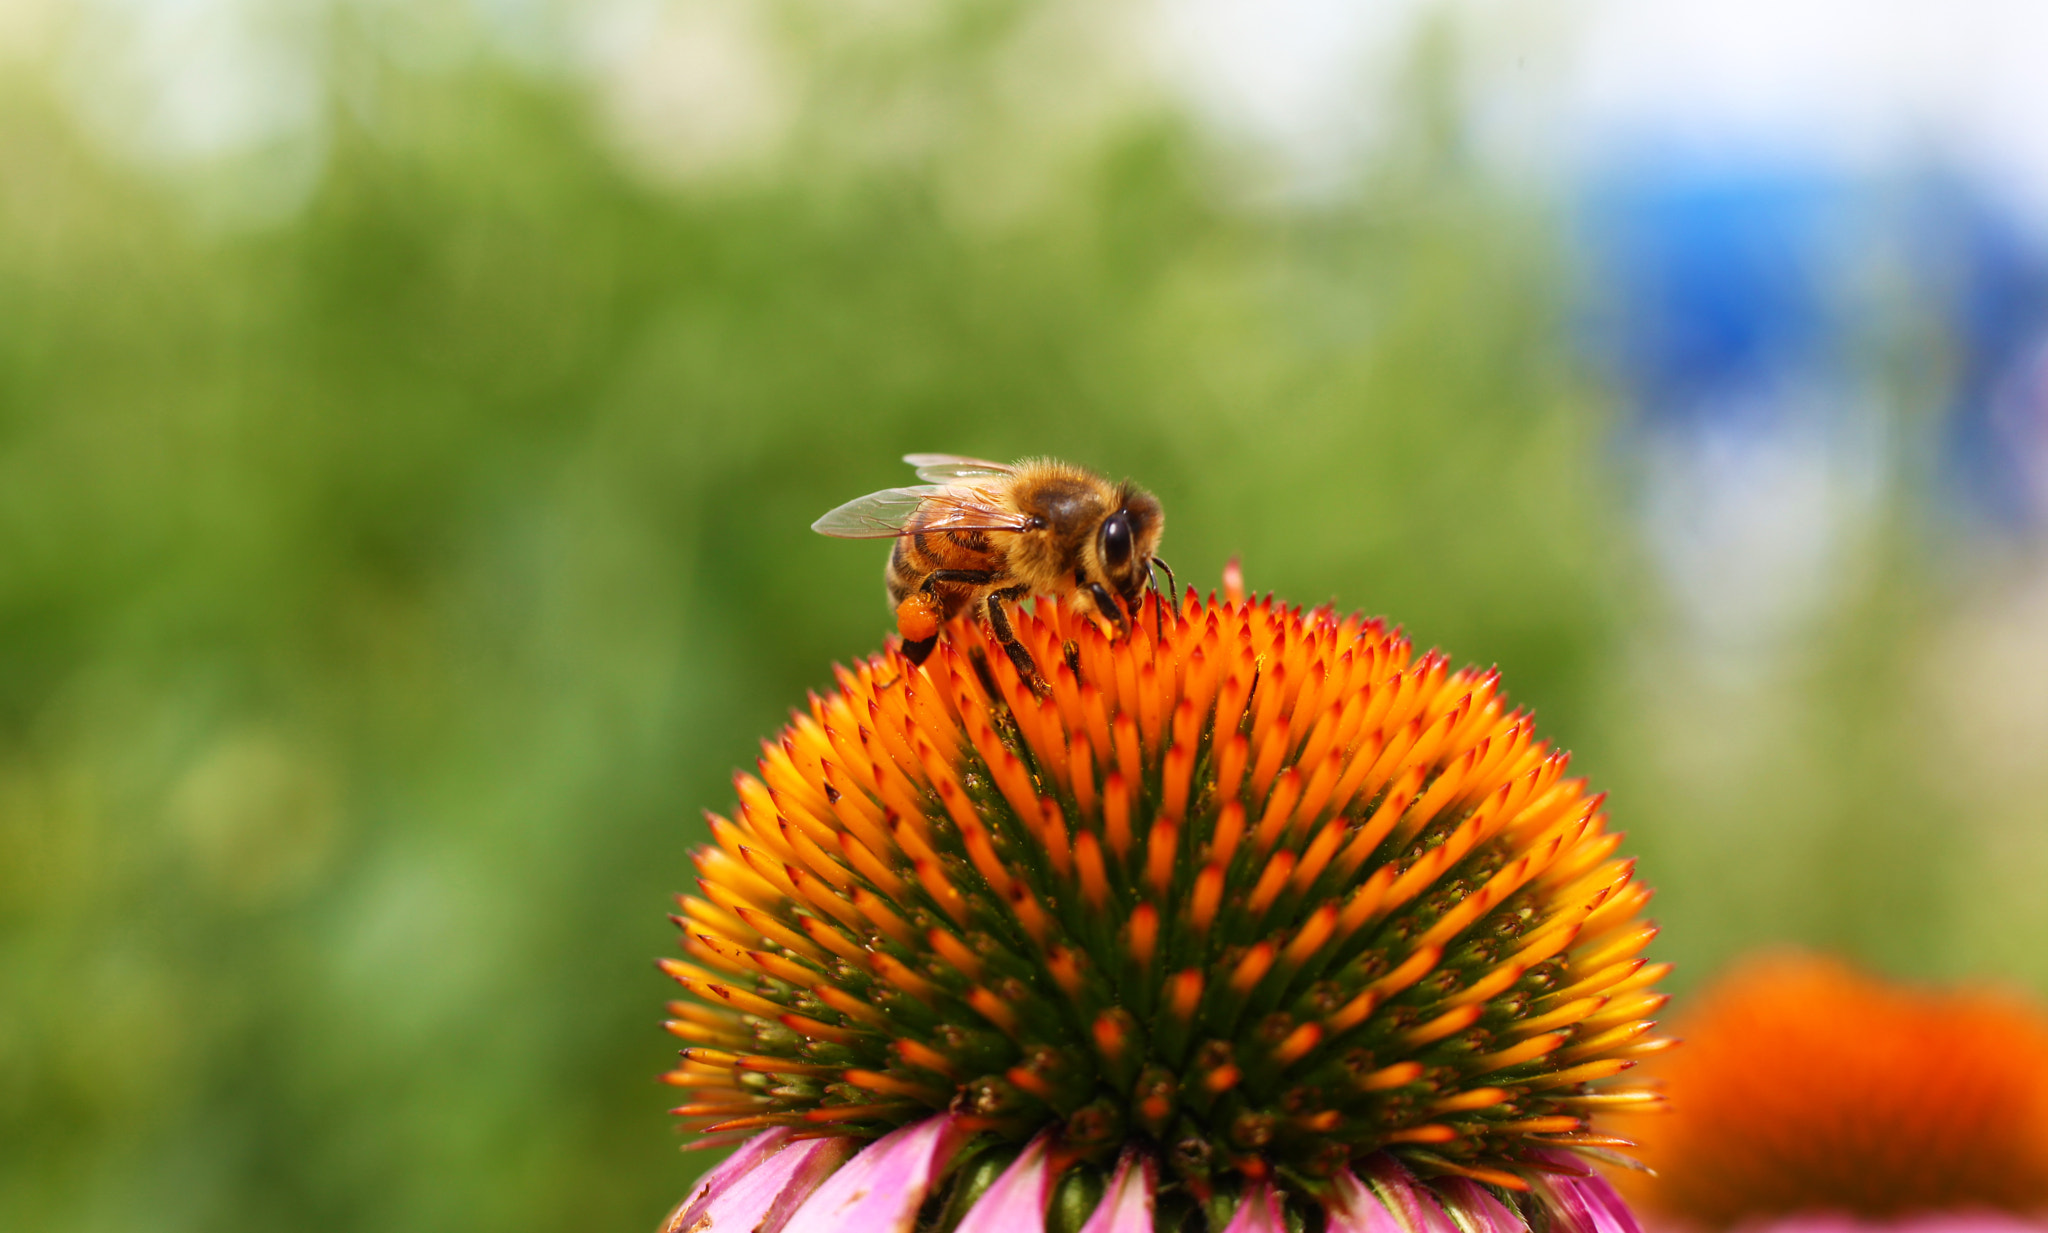 Photograph Bumble Bee on a Flower by Yana Bukharova on 500px